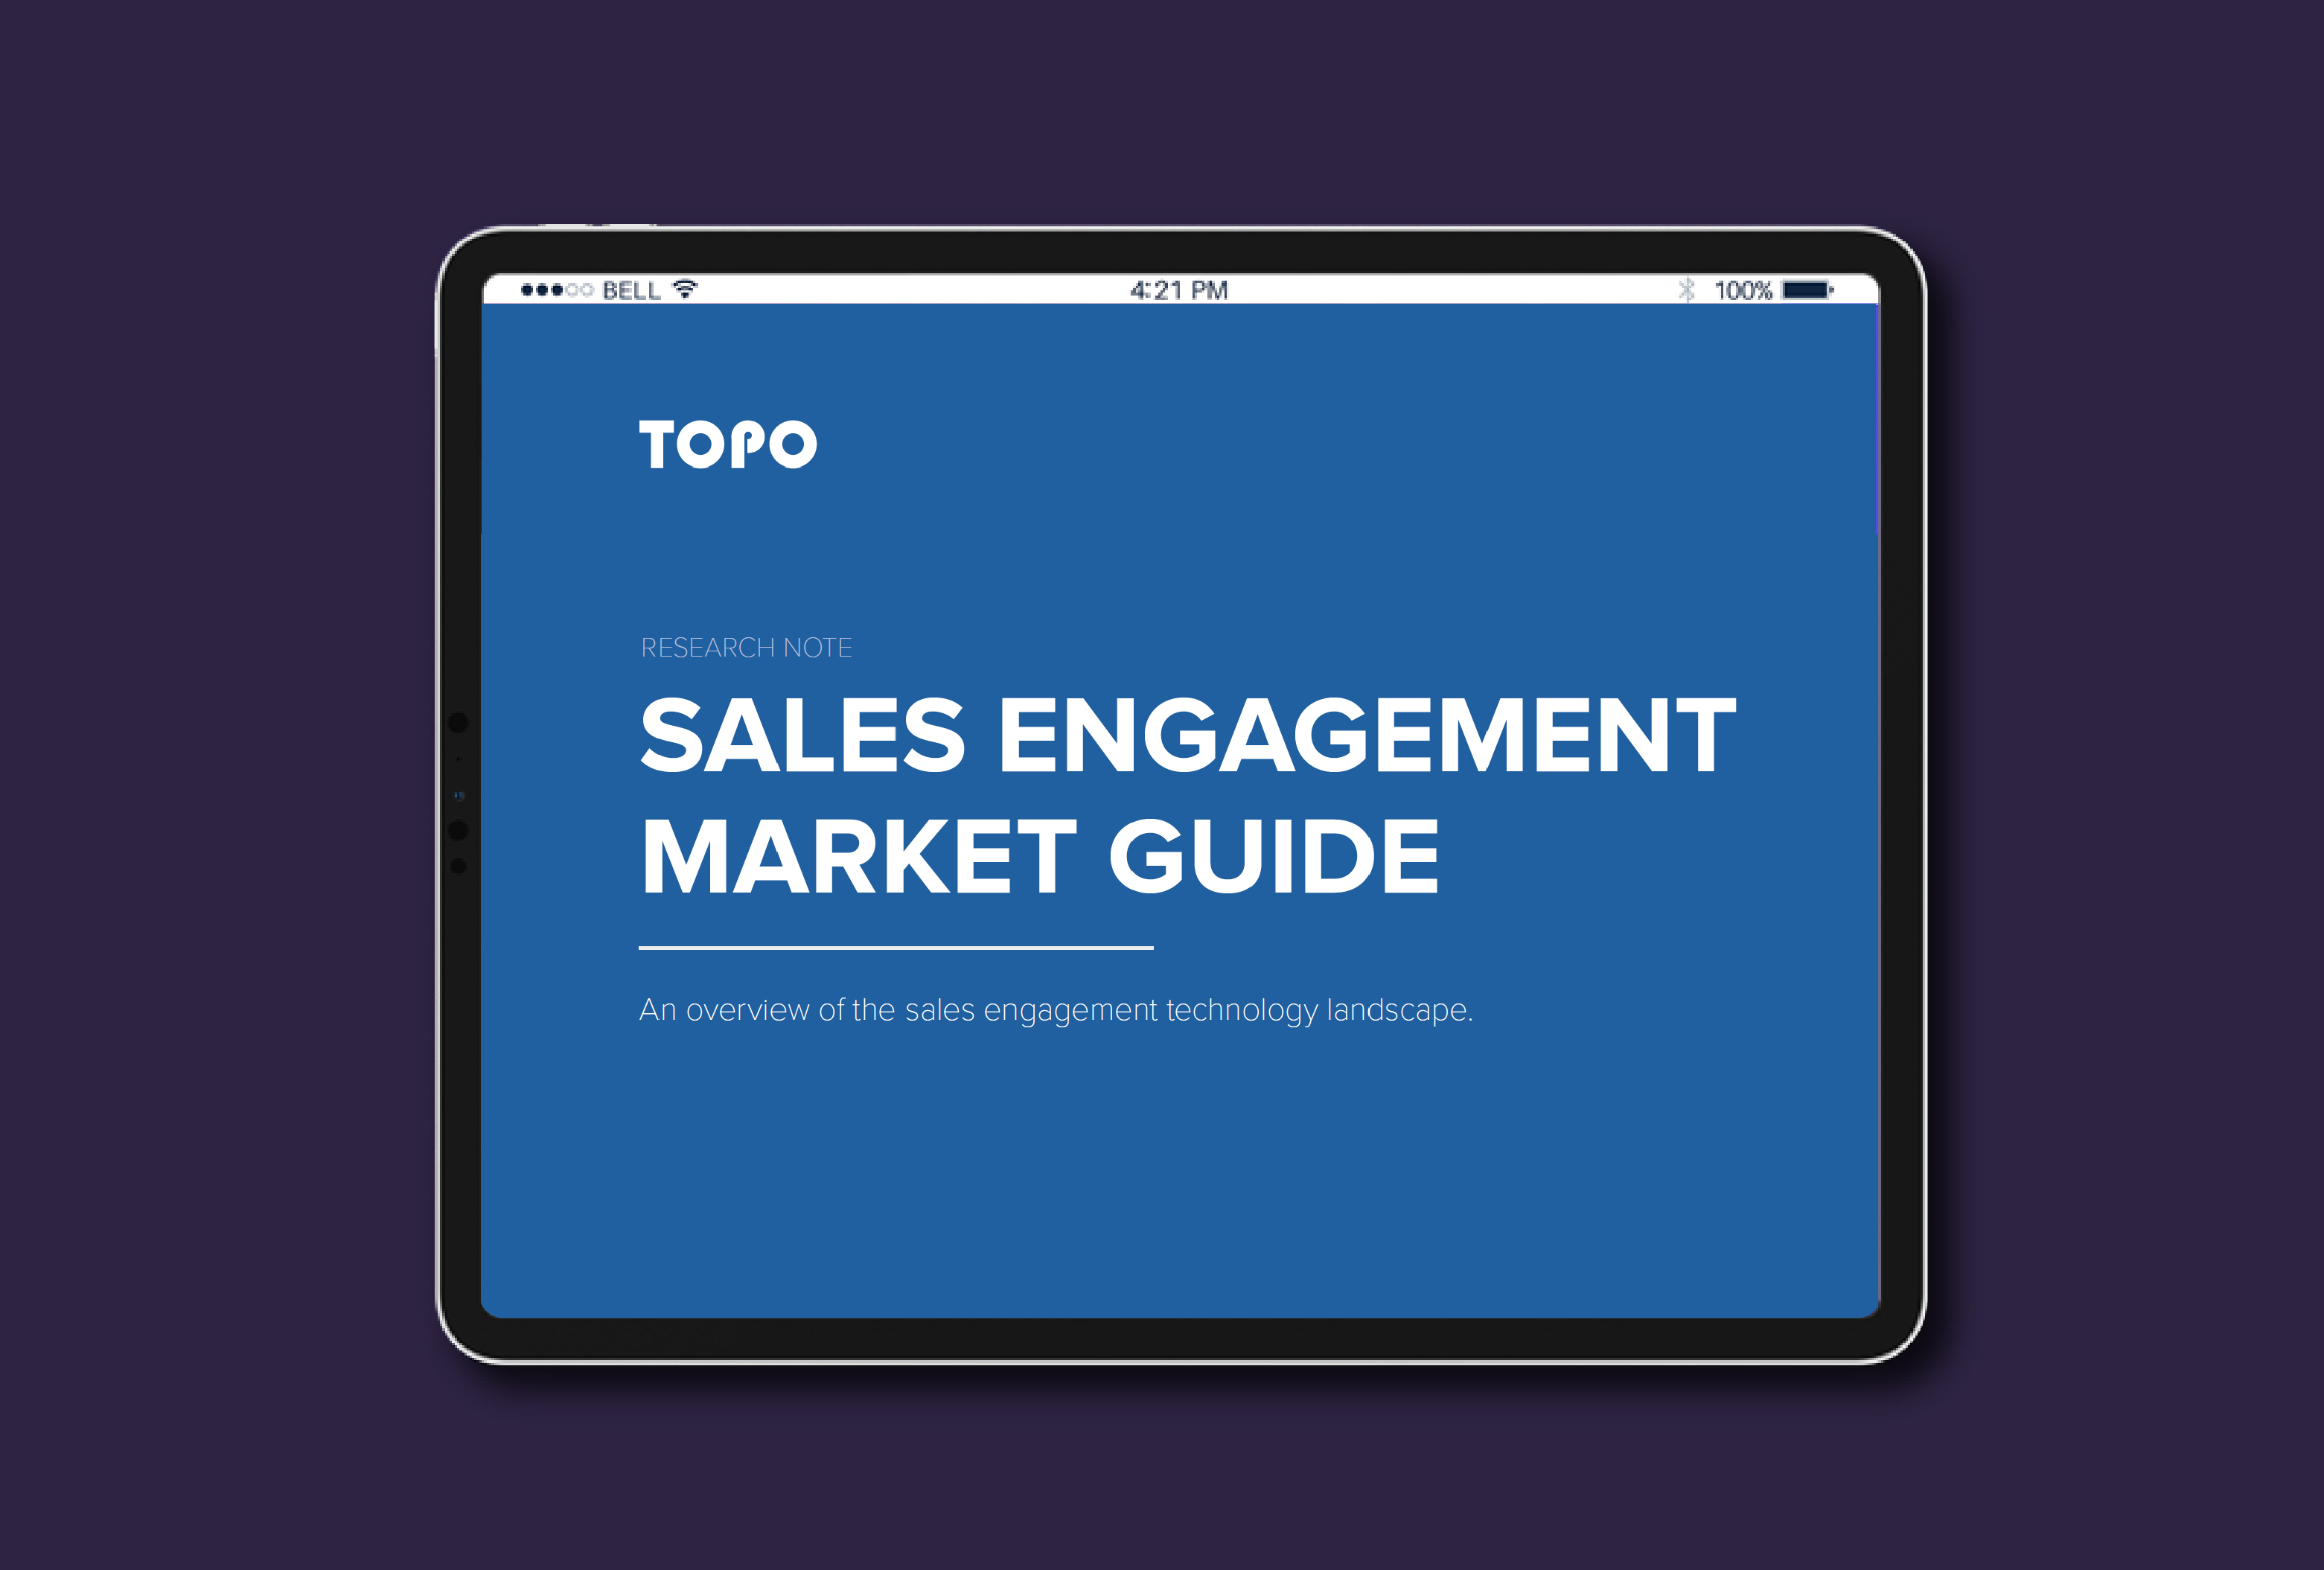 TOPO Sales Engagement Market Guide: An Overview of the Sales Engagement Technology Landscape